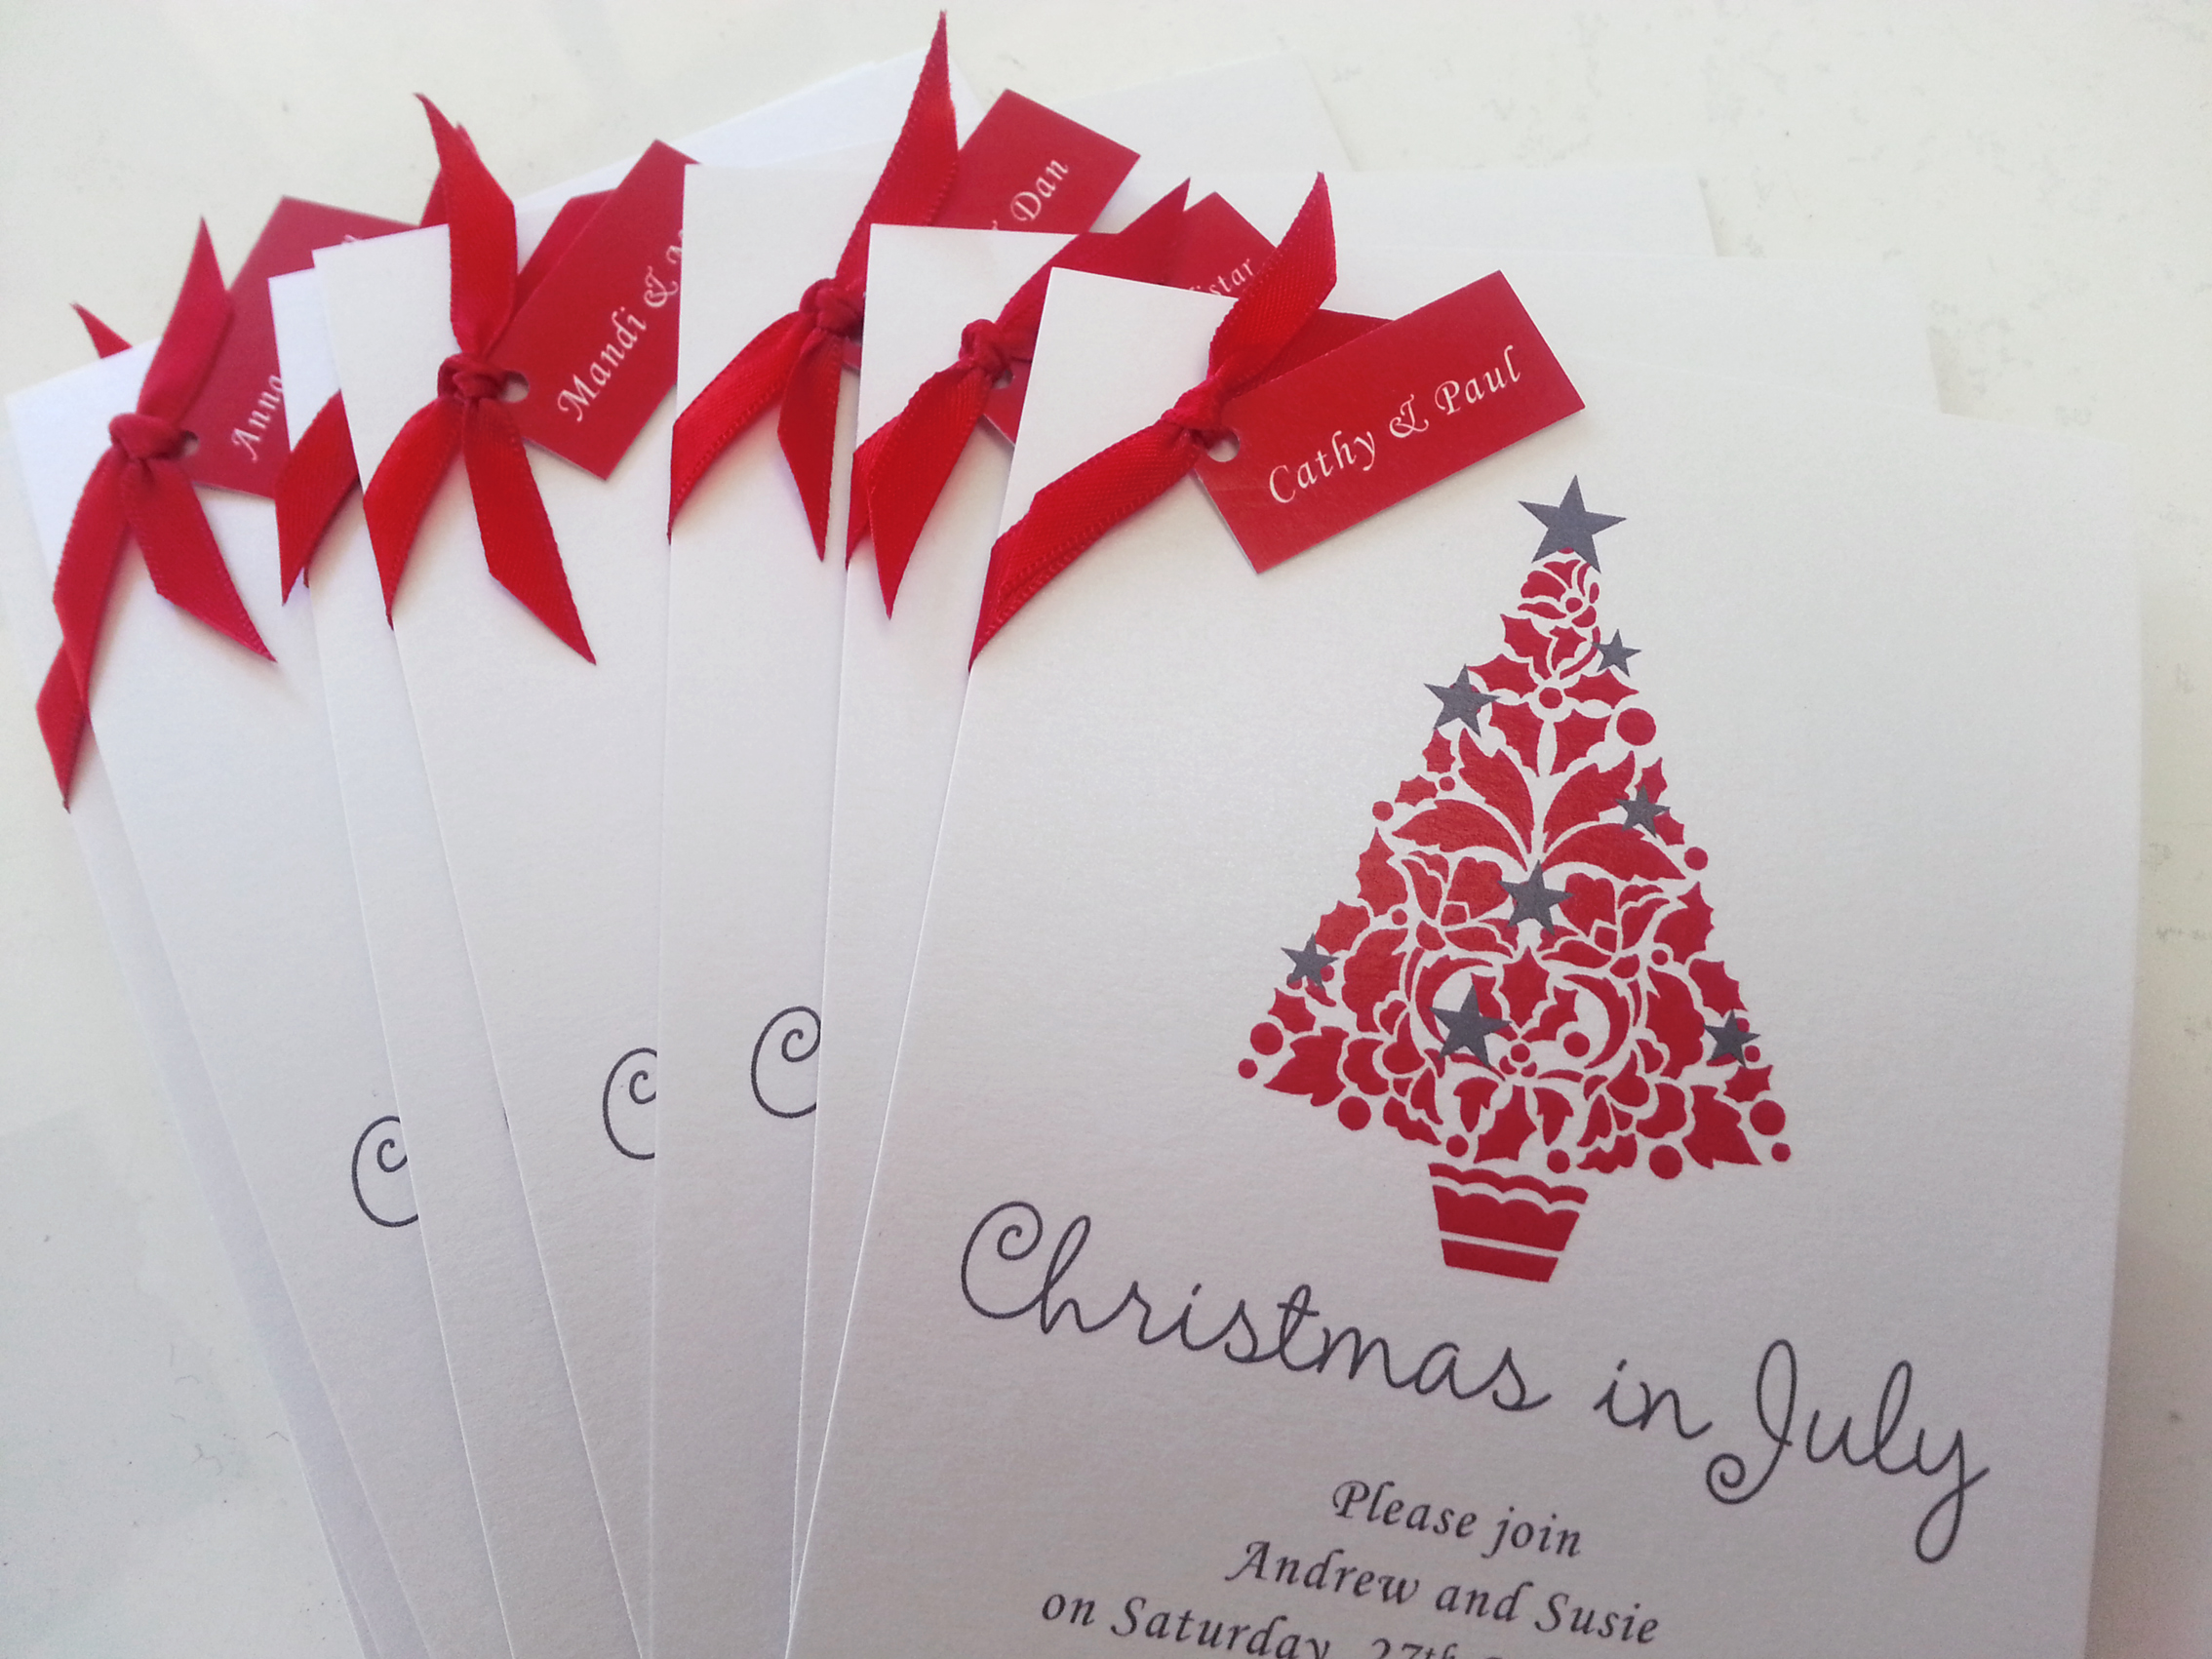 Christmas+in+July+celebration+invitation+sydney.jpg